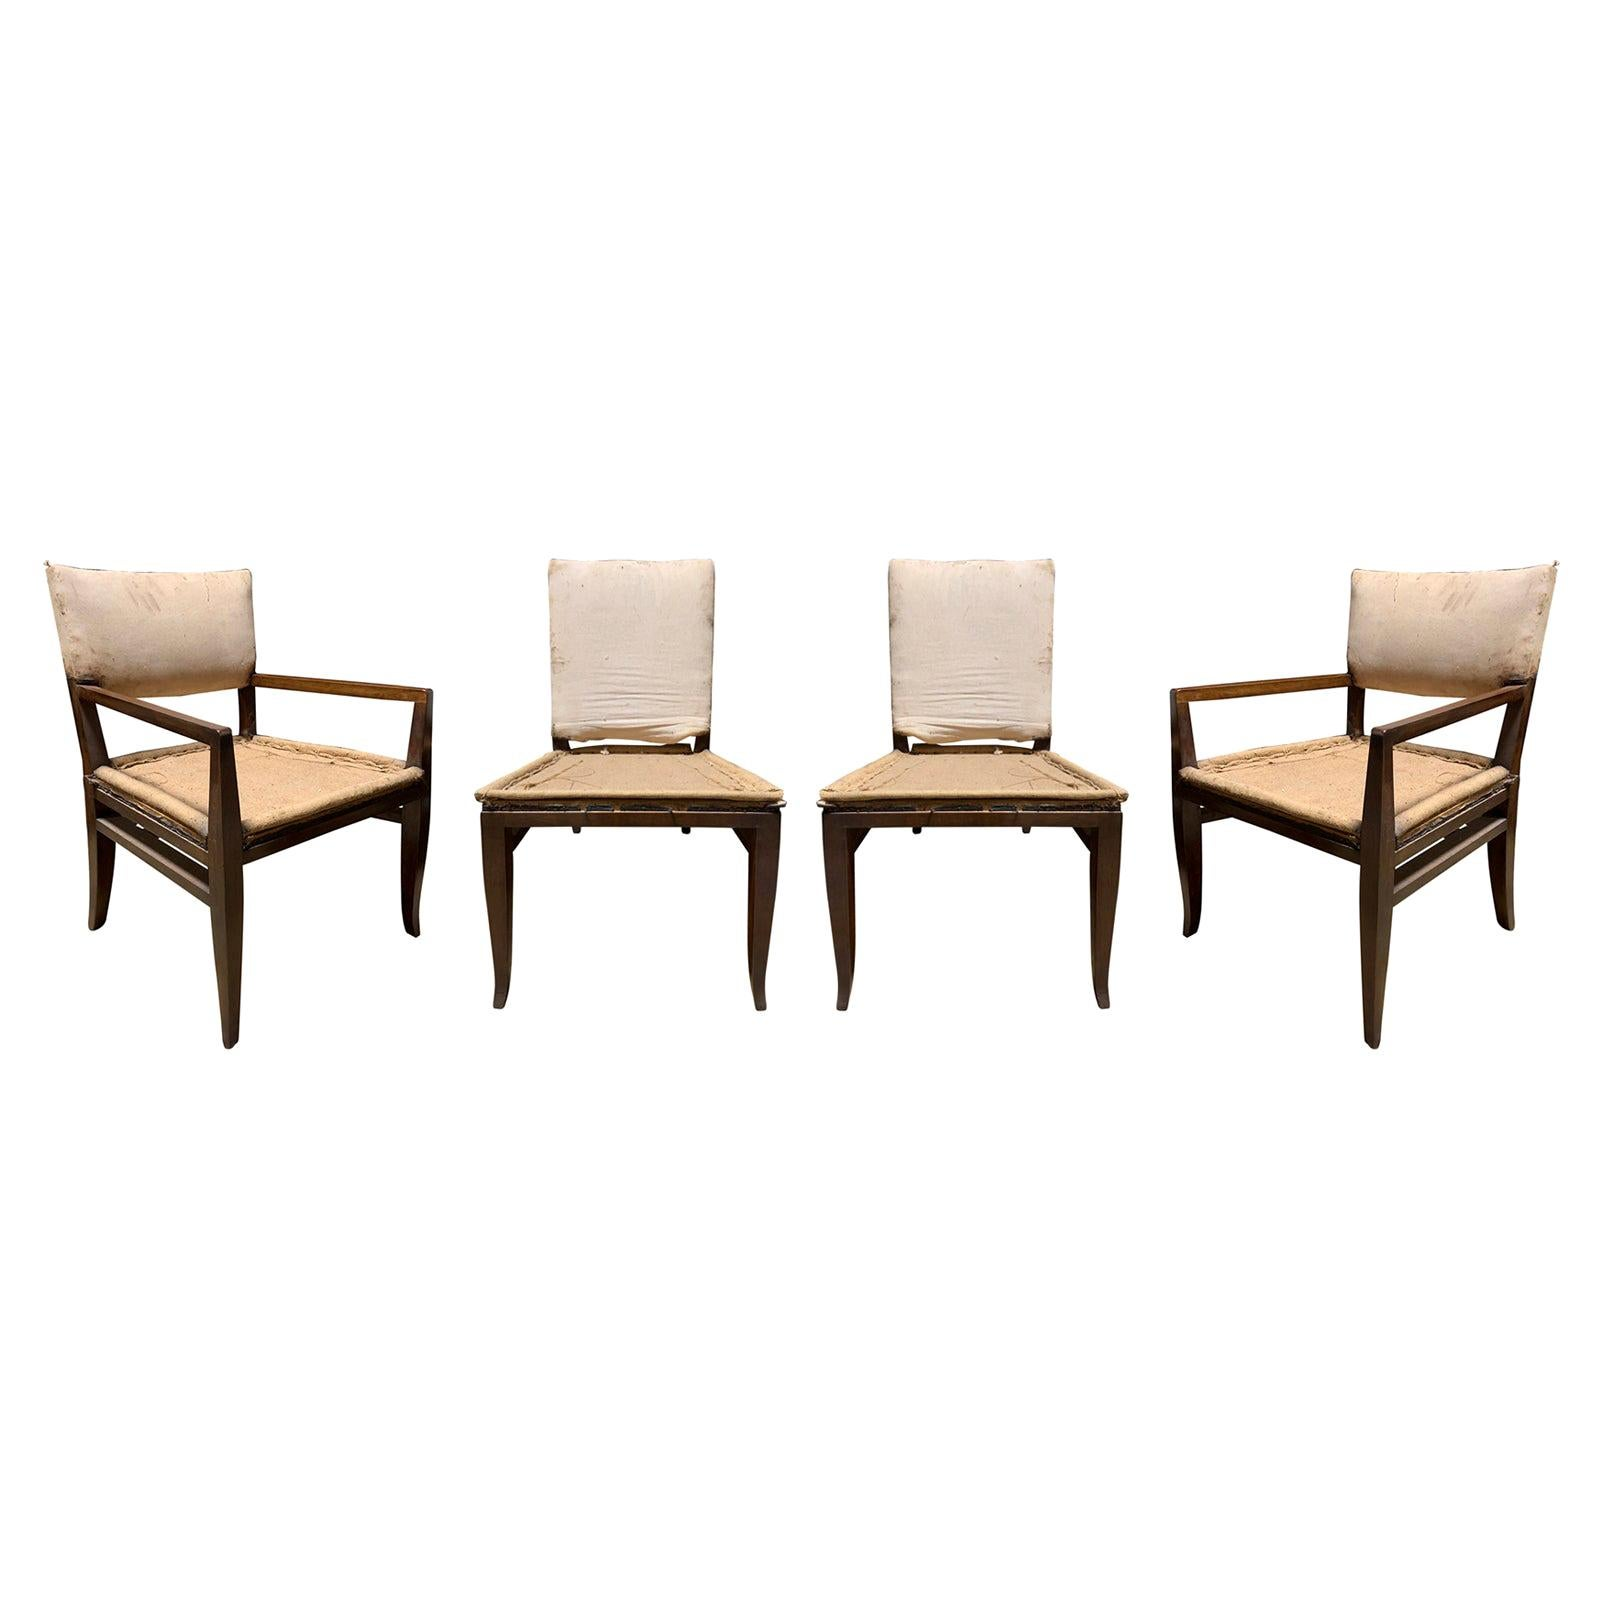 Set of Four Mid-20th Century T.H. Robsjohn-Gibbings Style Wood Chairs